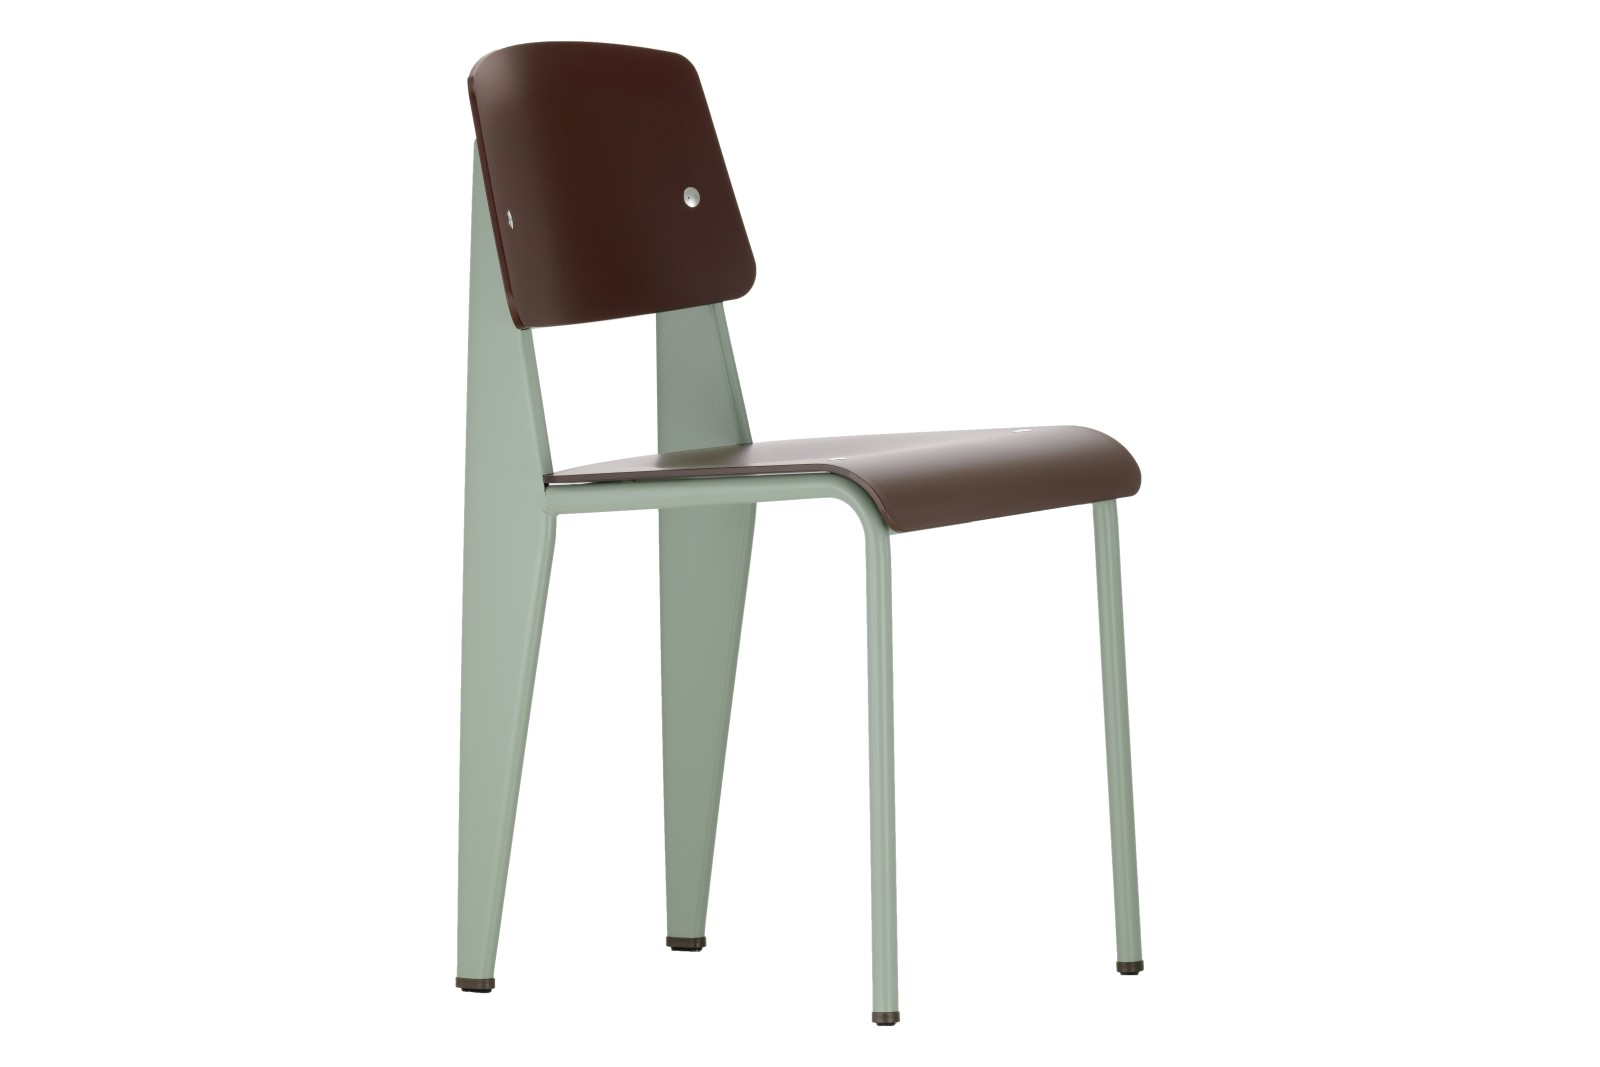 Standard SP Dining Chair 74 olive, 04 glides for carpet, 91 Mint powder-coated